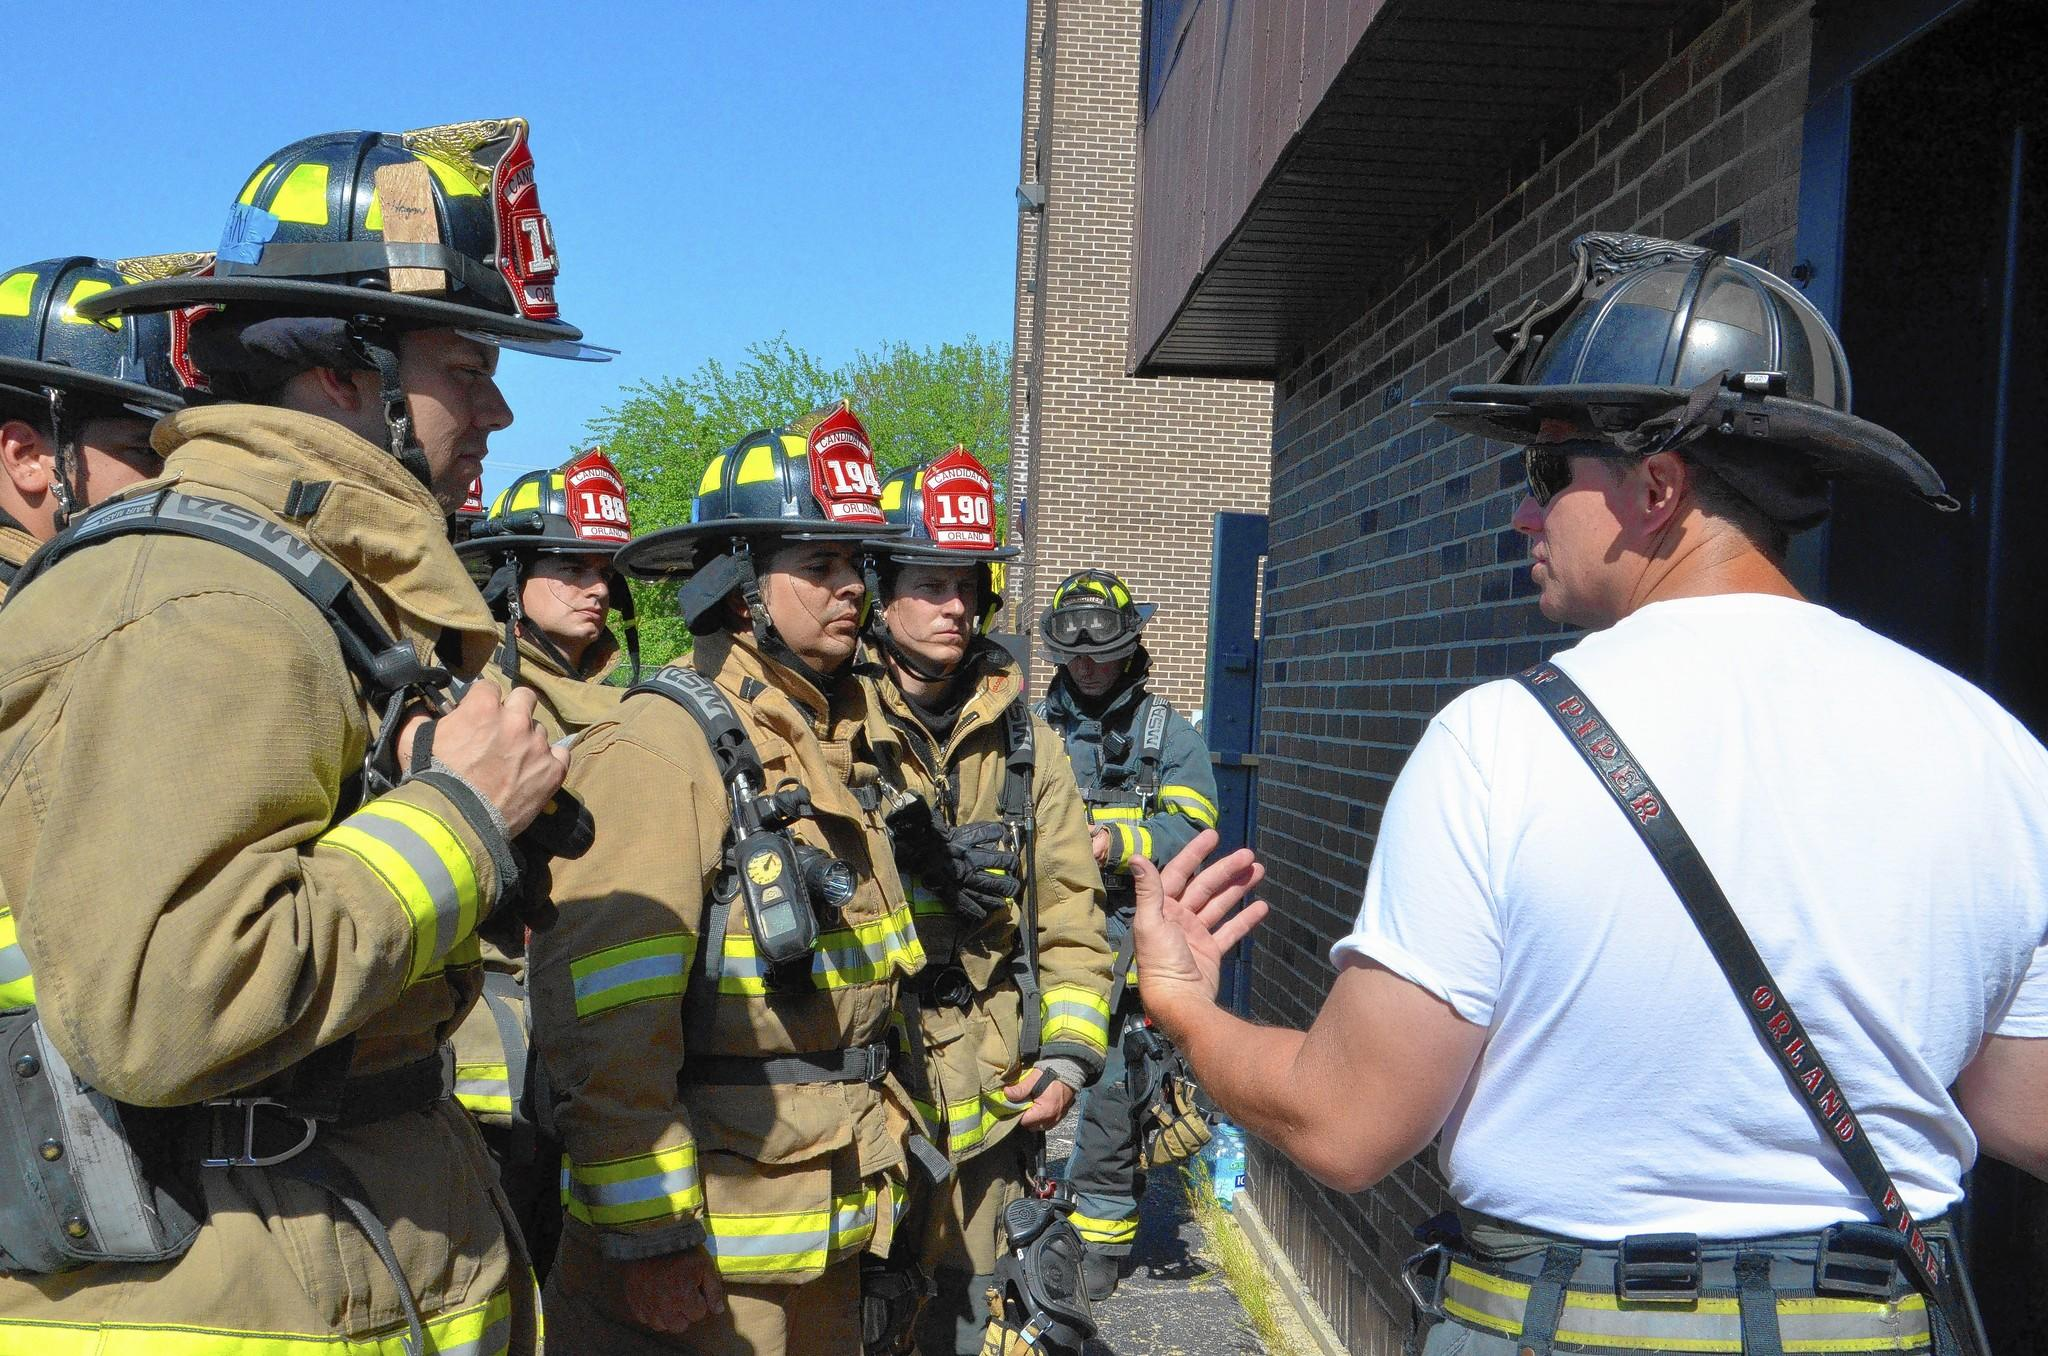 Lt. Dave Piper, training and safety officer at the Orland Fire Protection District, briefs candidates on the fire they're about to battle in a training exercise.